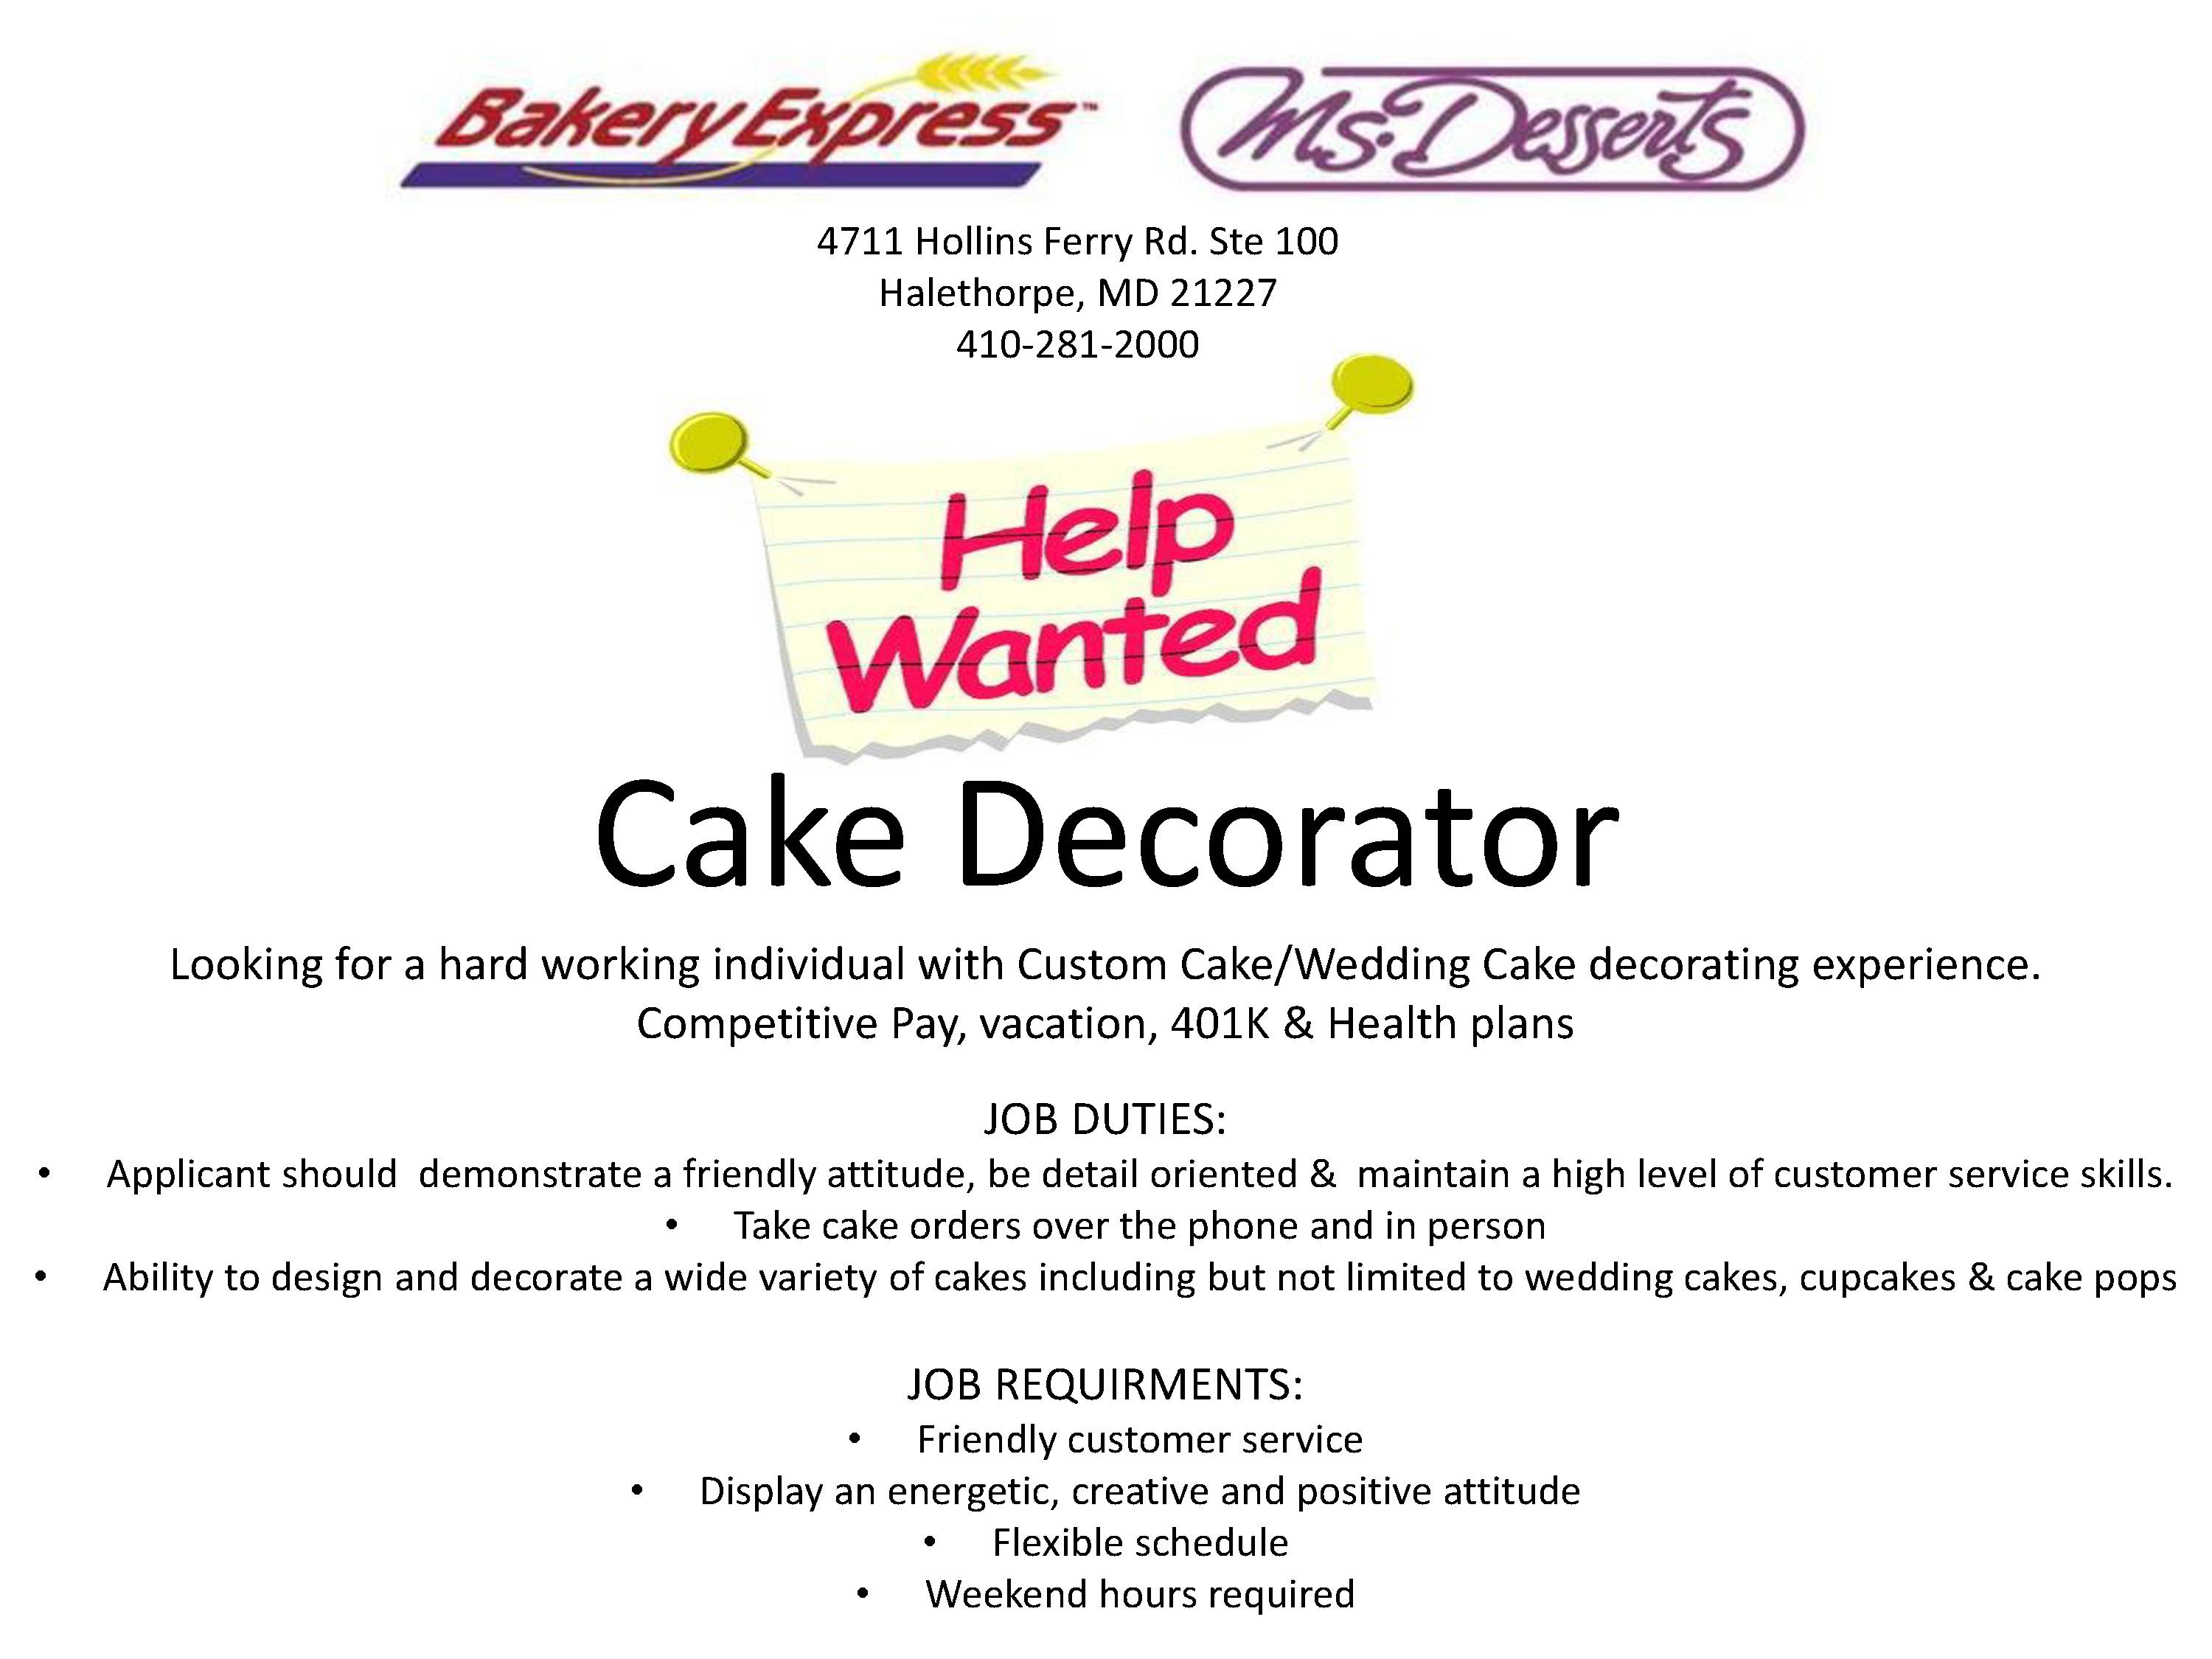 Cake decorator job description flisol home help wanted cake decorator 2017 junglespirit